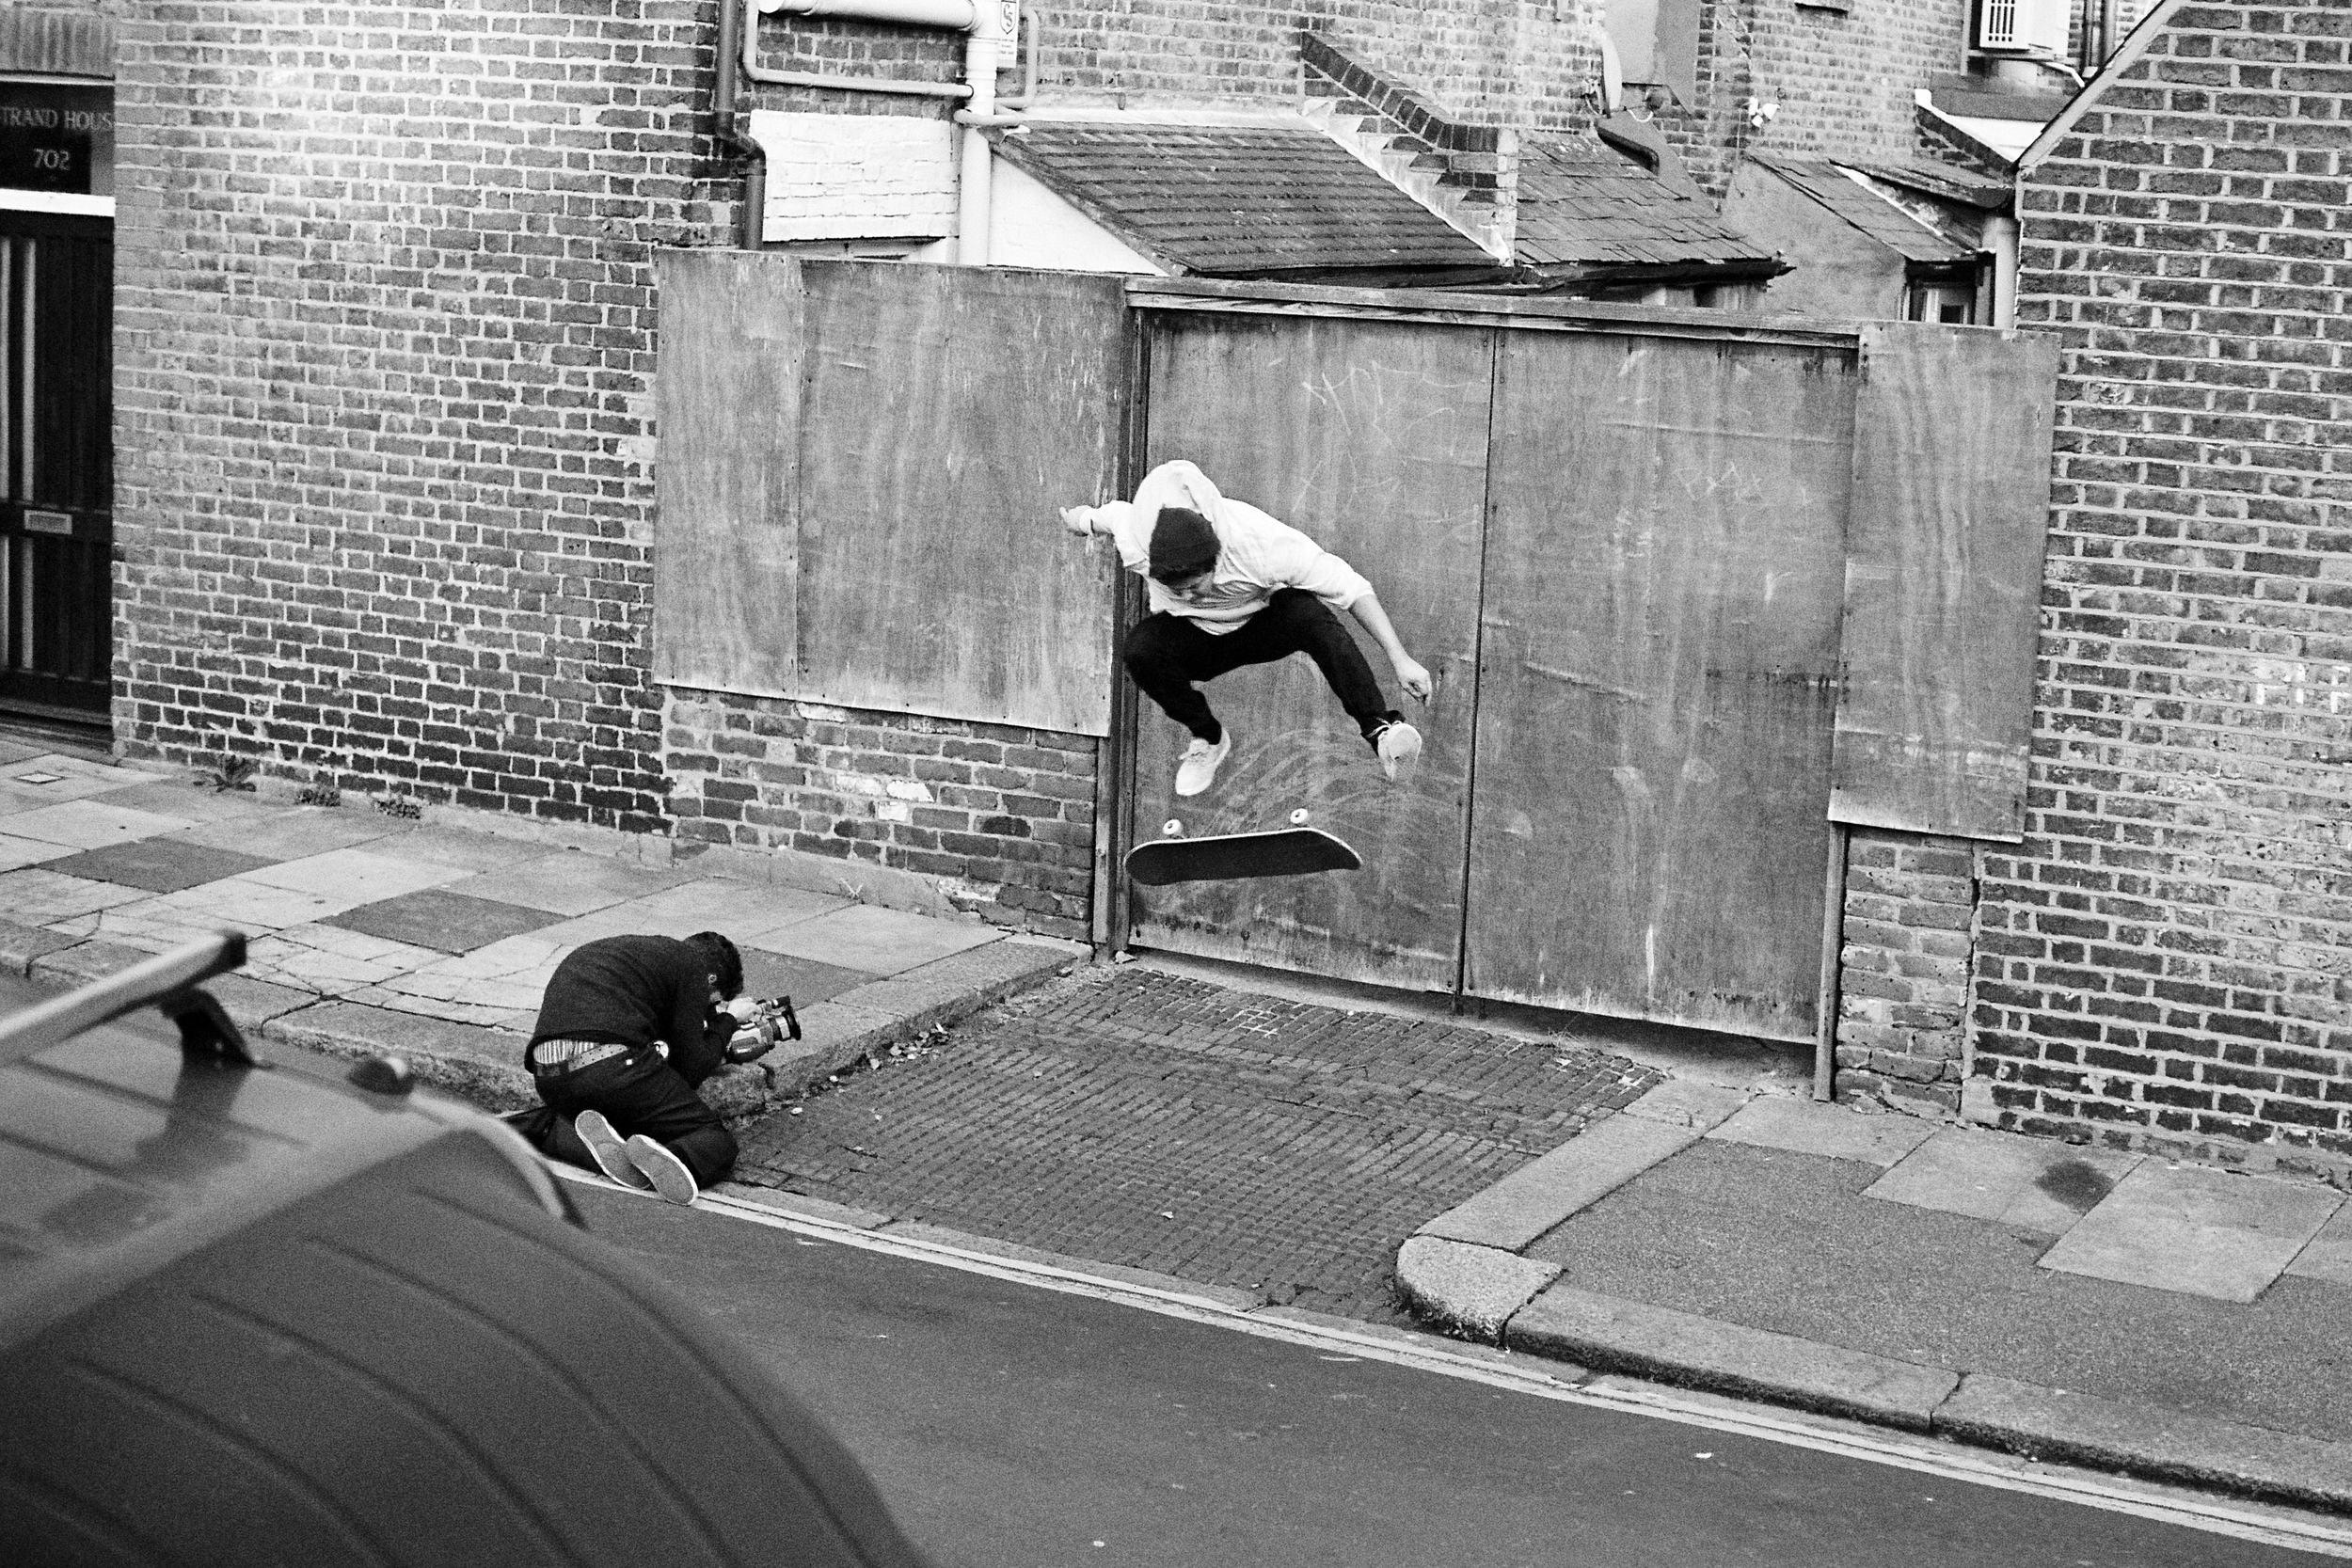 Warren Greatrex - Switch Kickflip